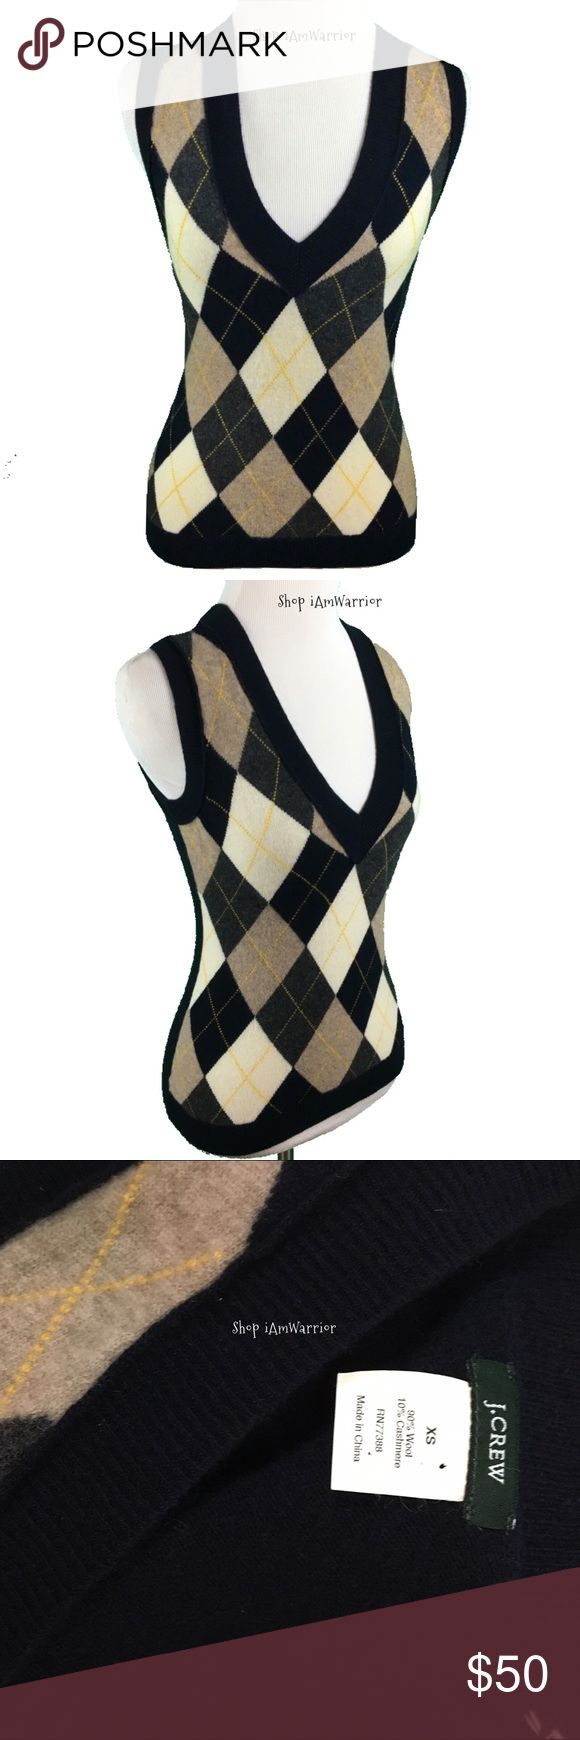 J Crew cashmere blend argyle sweater vest Great little navy blue cashmere blend sleeveless sweater from J. Crew (actual store not J. Crew factory as indication by single dot on tag). Has ivory and tan argyle print on front. Great condition. Looks great layered with long sleeve t-shirt, turtleneck or crisp button down and dark wash denim. J. Crew Sweaters